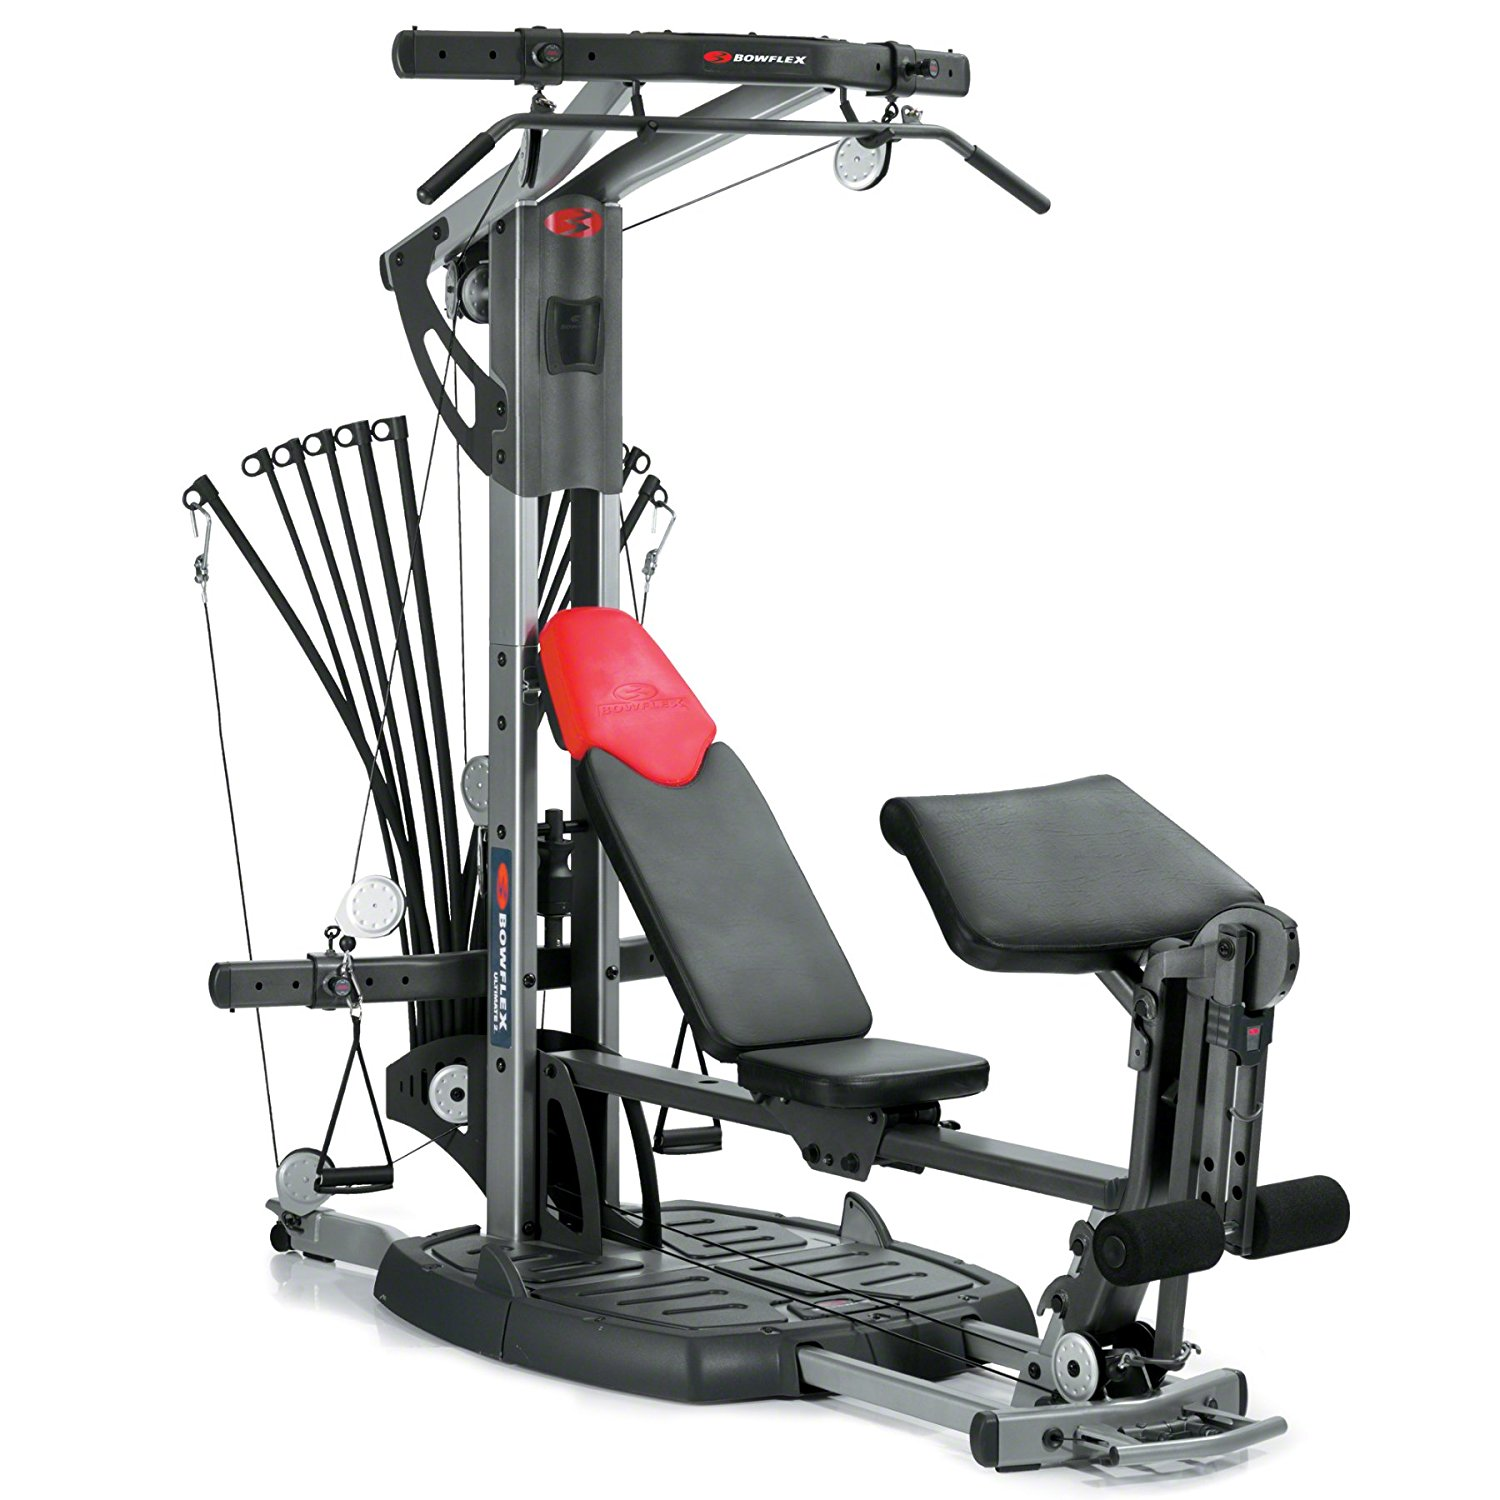 Bowflex ultimate home gym review fitness tech pro